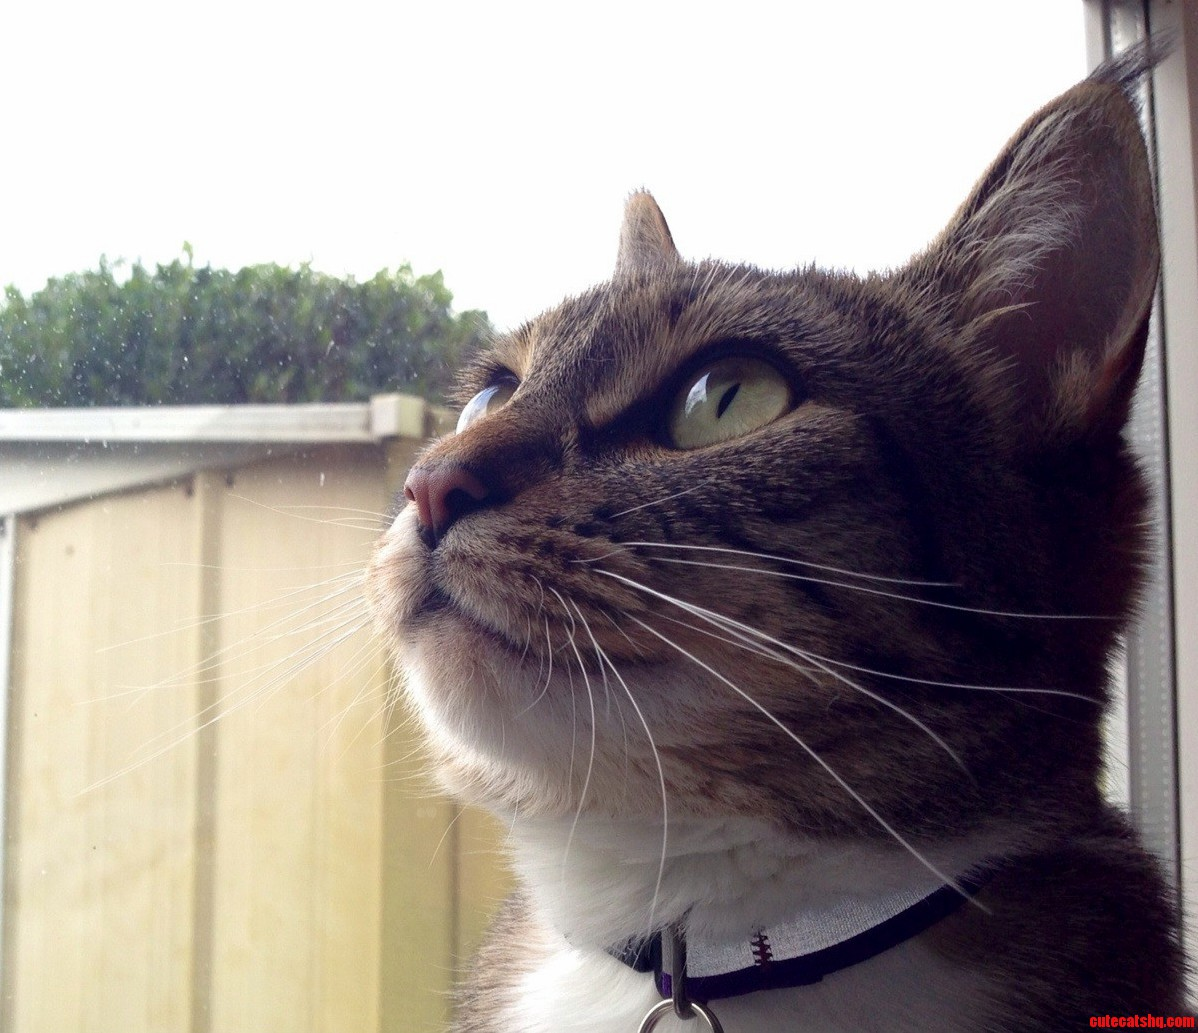 Day Dreaming About Outside